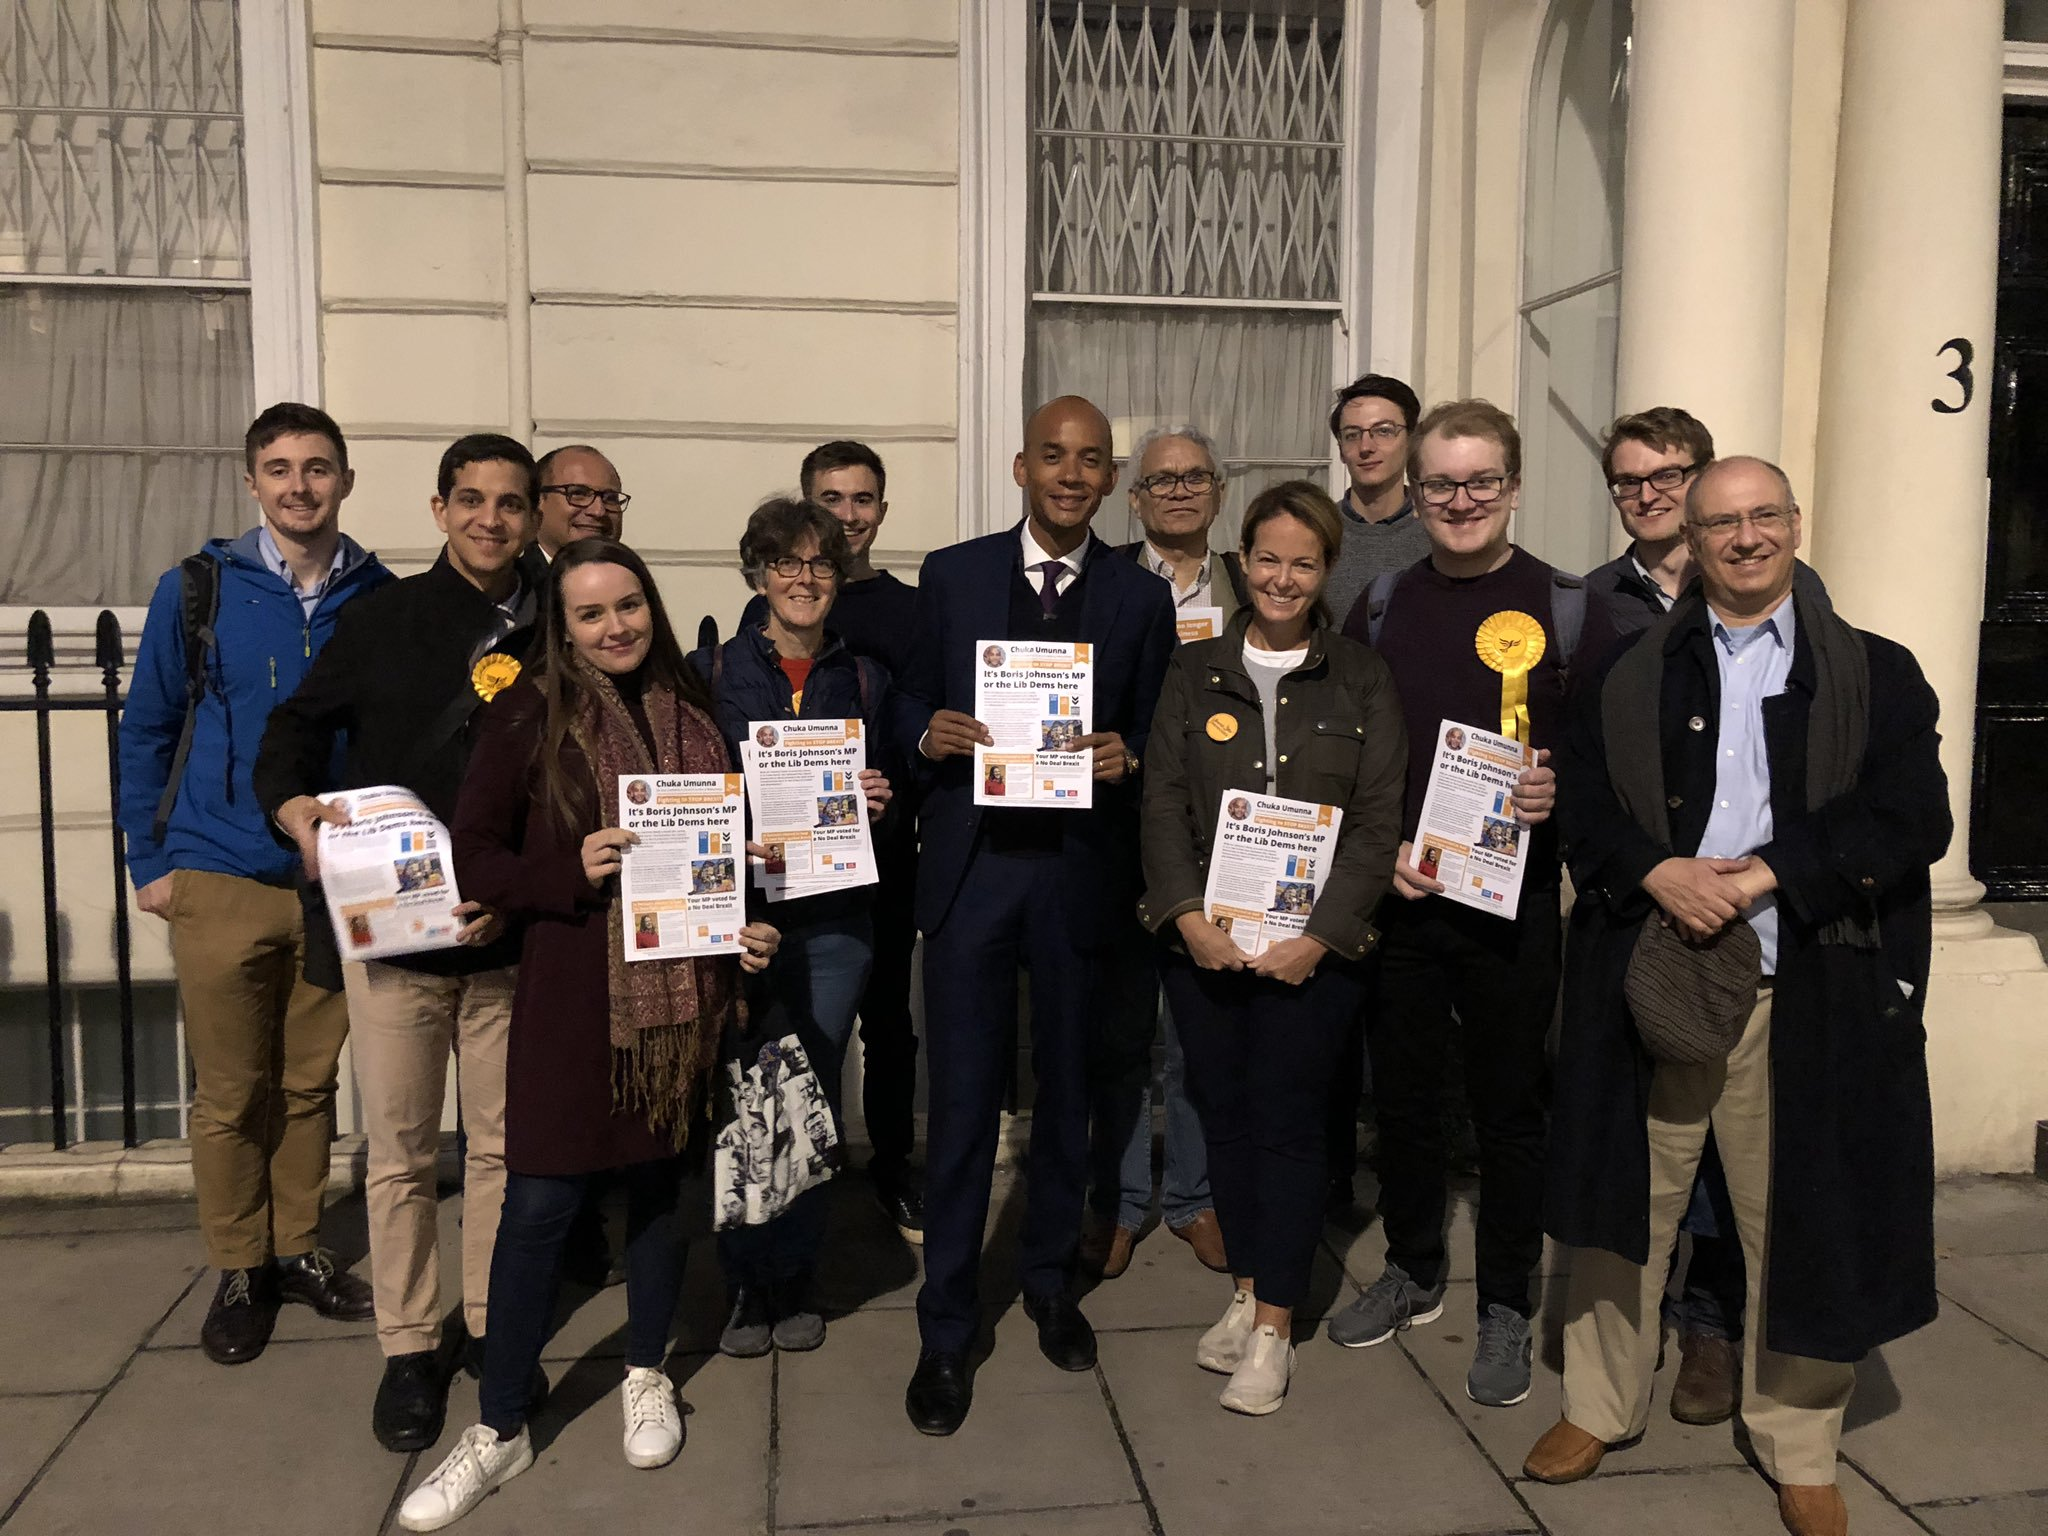 Pimlico canvassing with Chuka